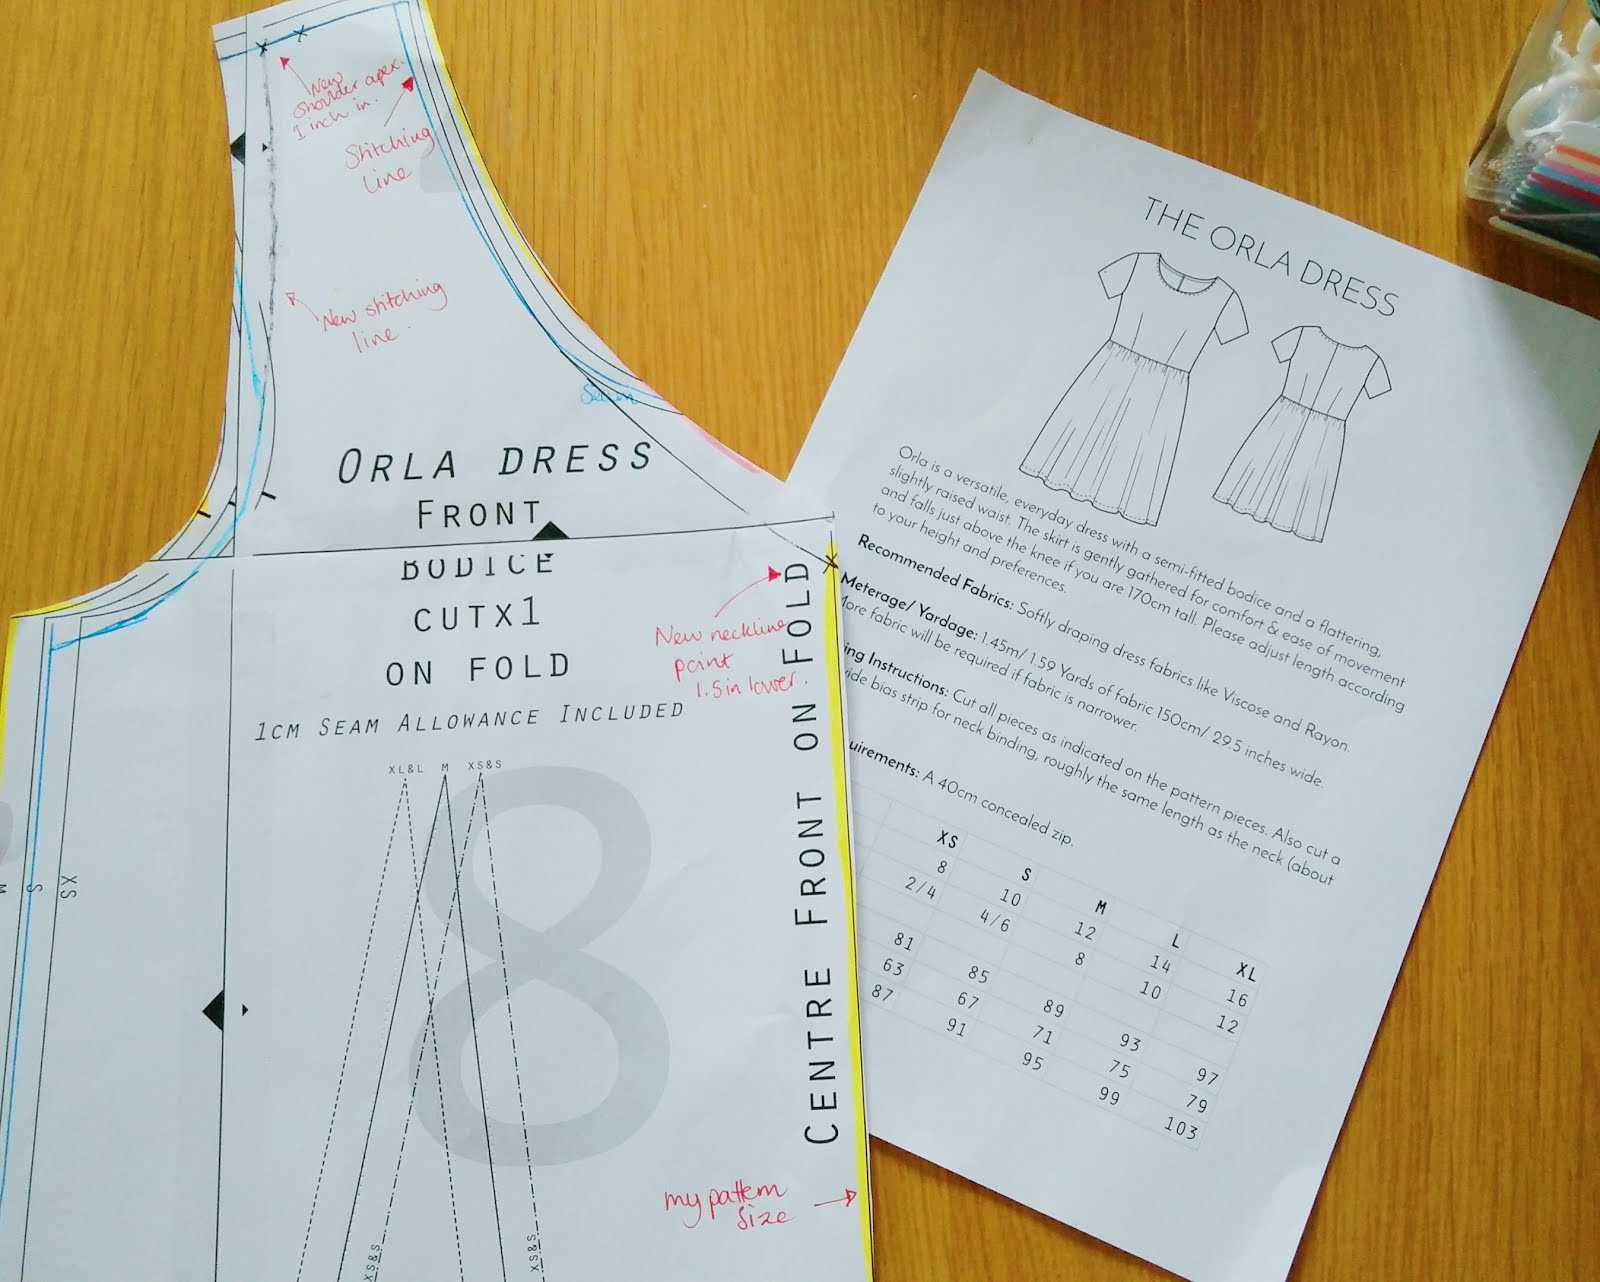 Orla dress alterations